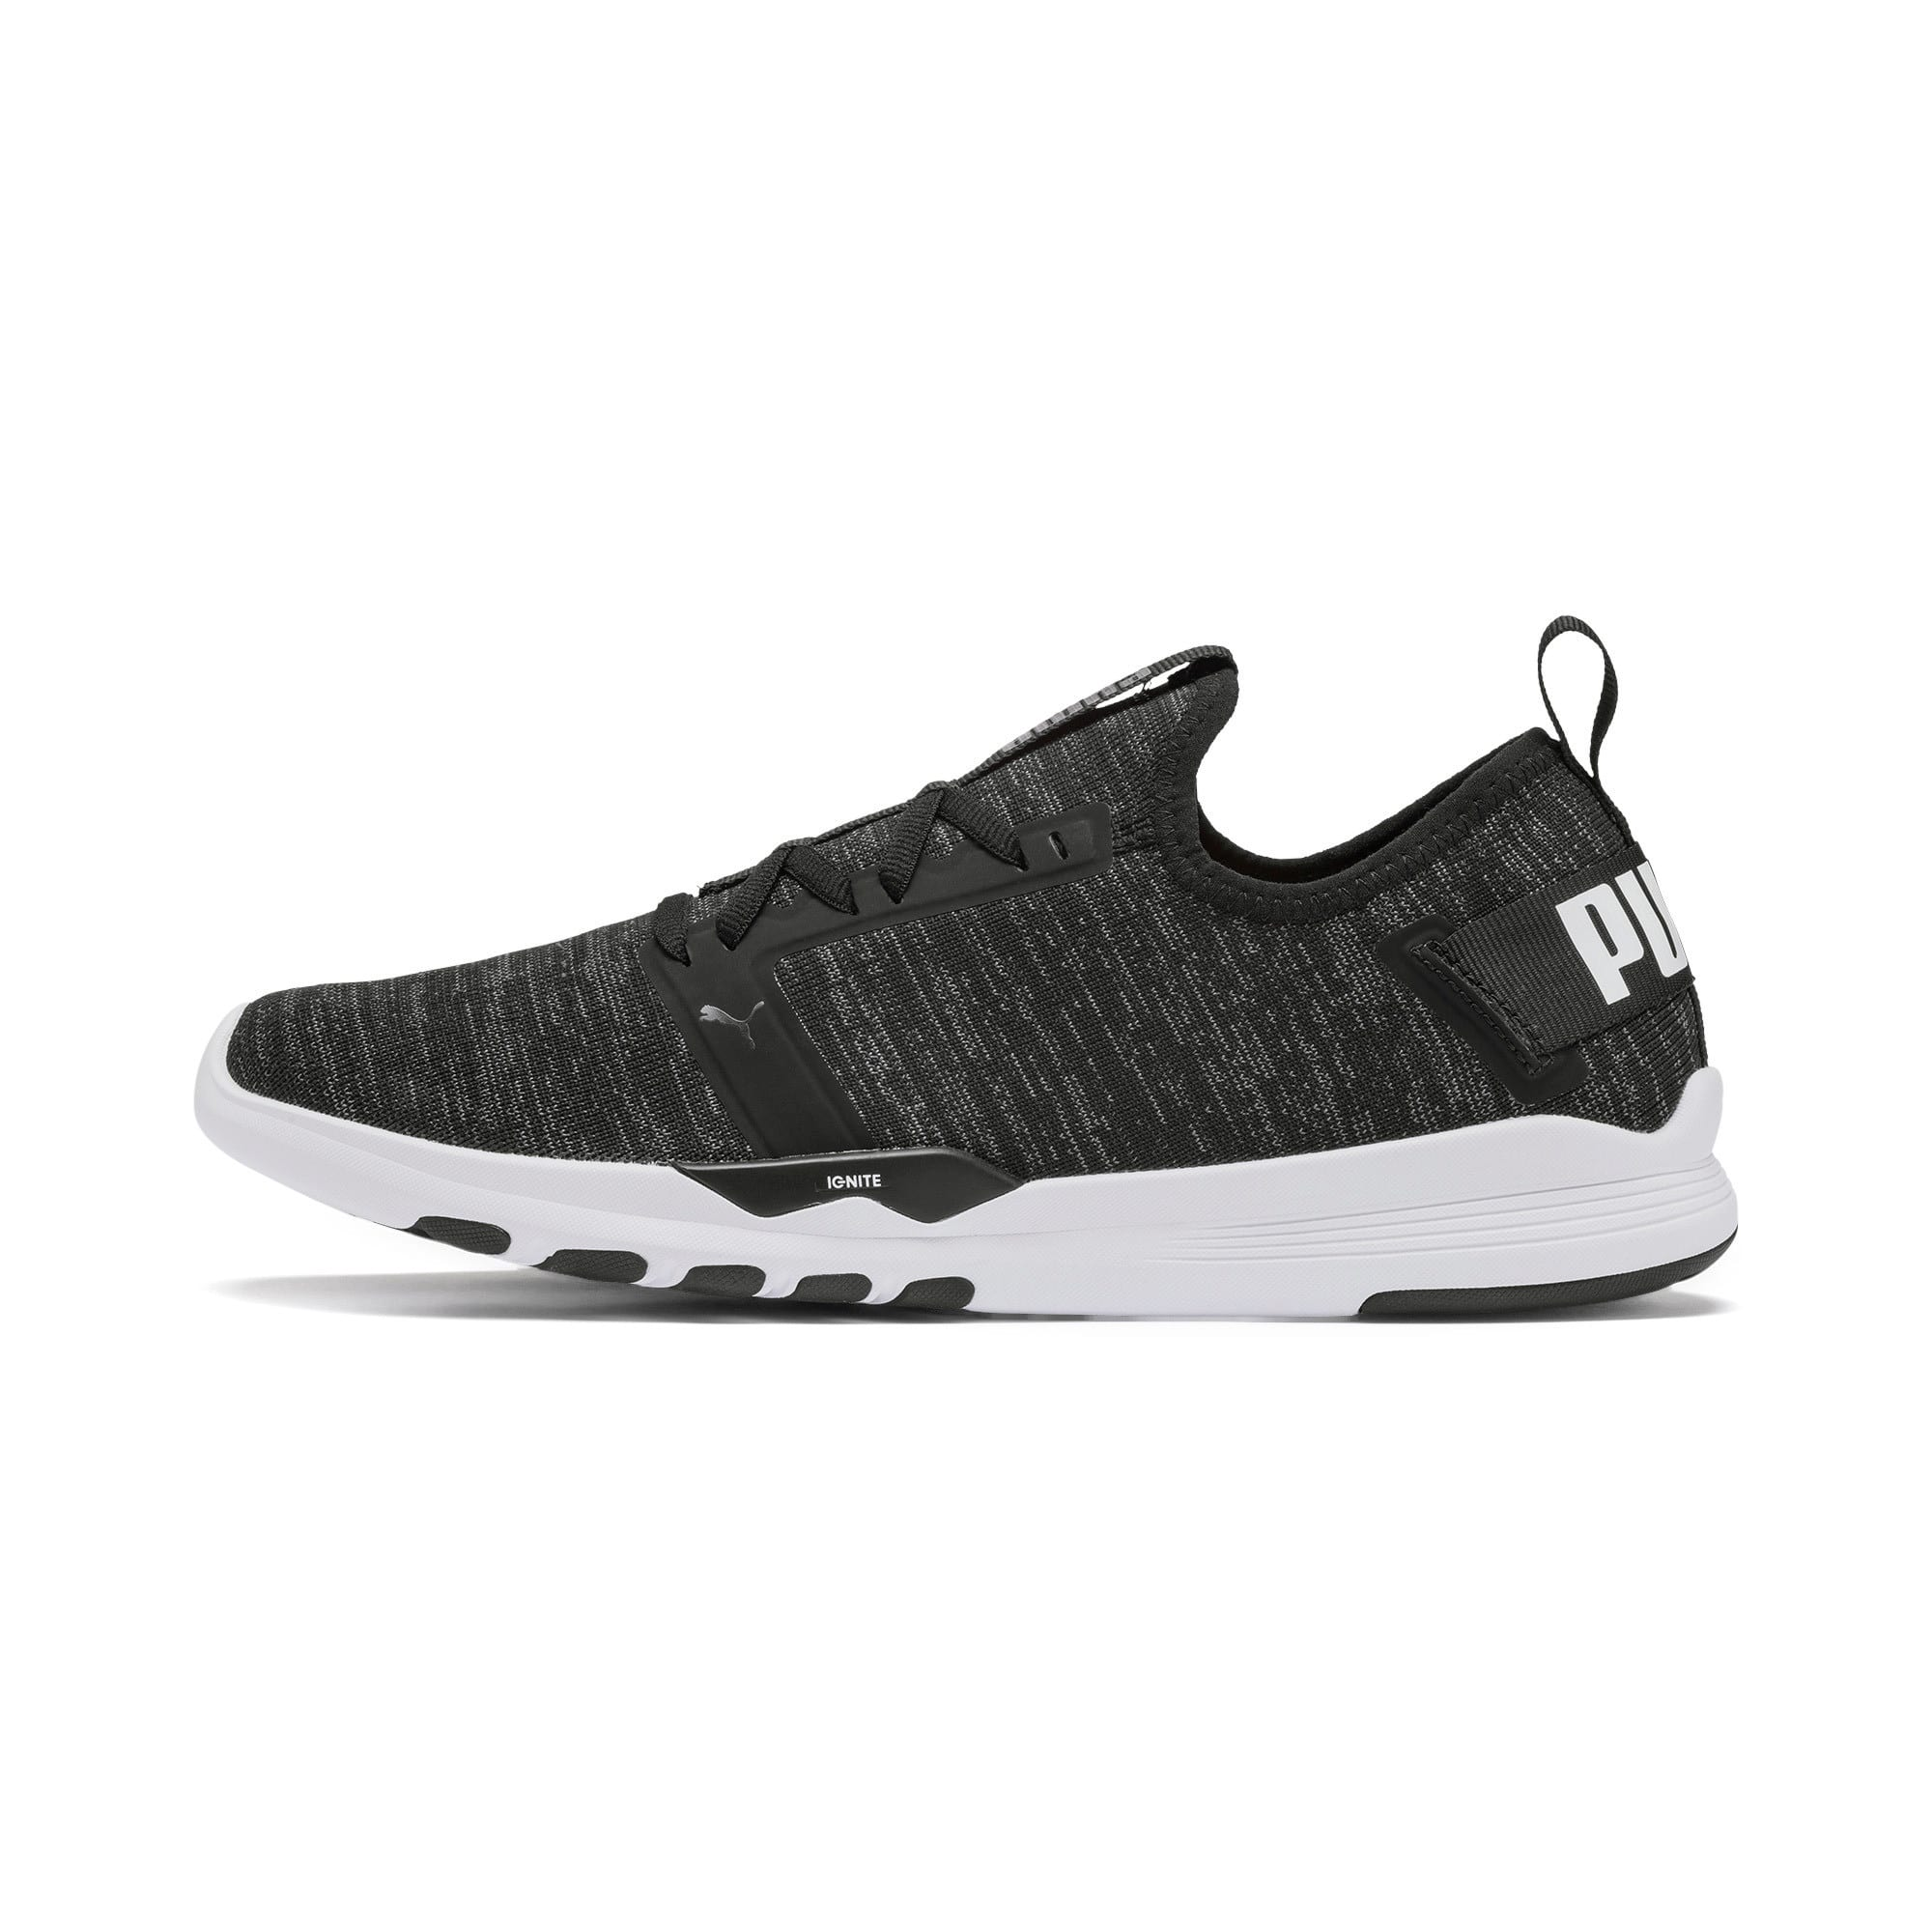 Thumbnail 1 of IGNITE Contender Knit Men's Running Shoes, Puma Black-Puma White, medium-IND